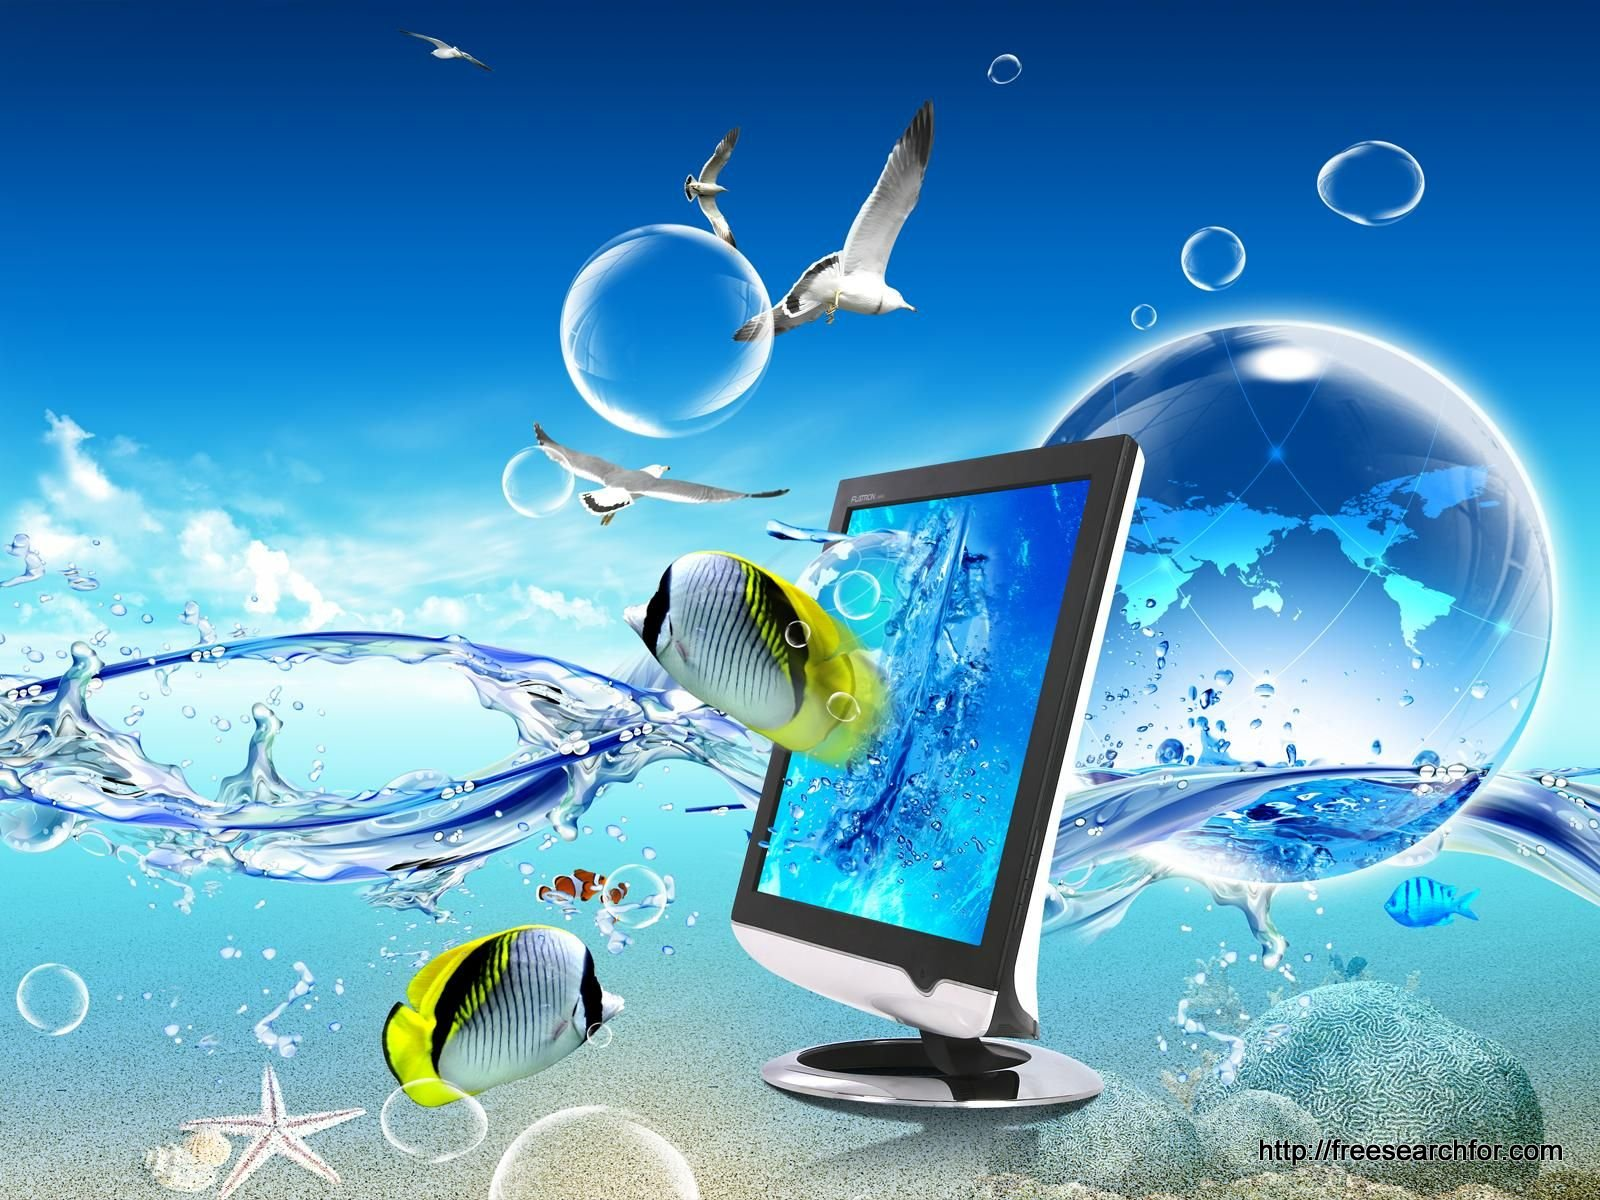 Live Wallpaper For Laptop Free Download